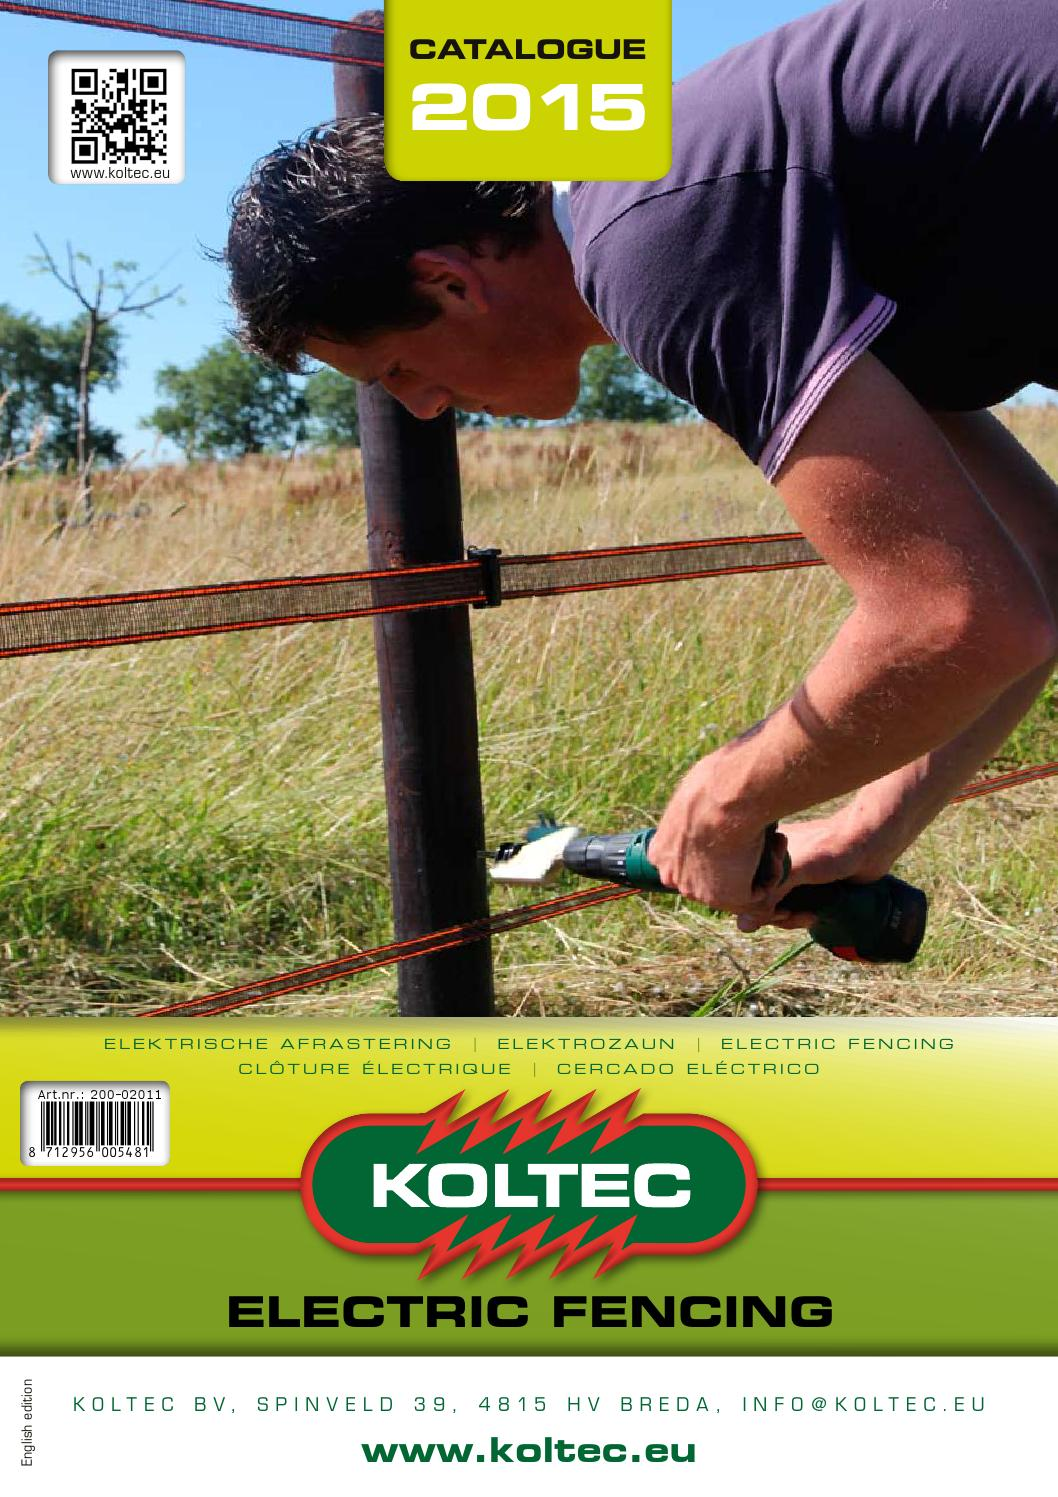 Koltec Catalogus 2015 En By Hilko Dammer Issuu Electric Fence Wire Joiner 25pcs